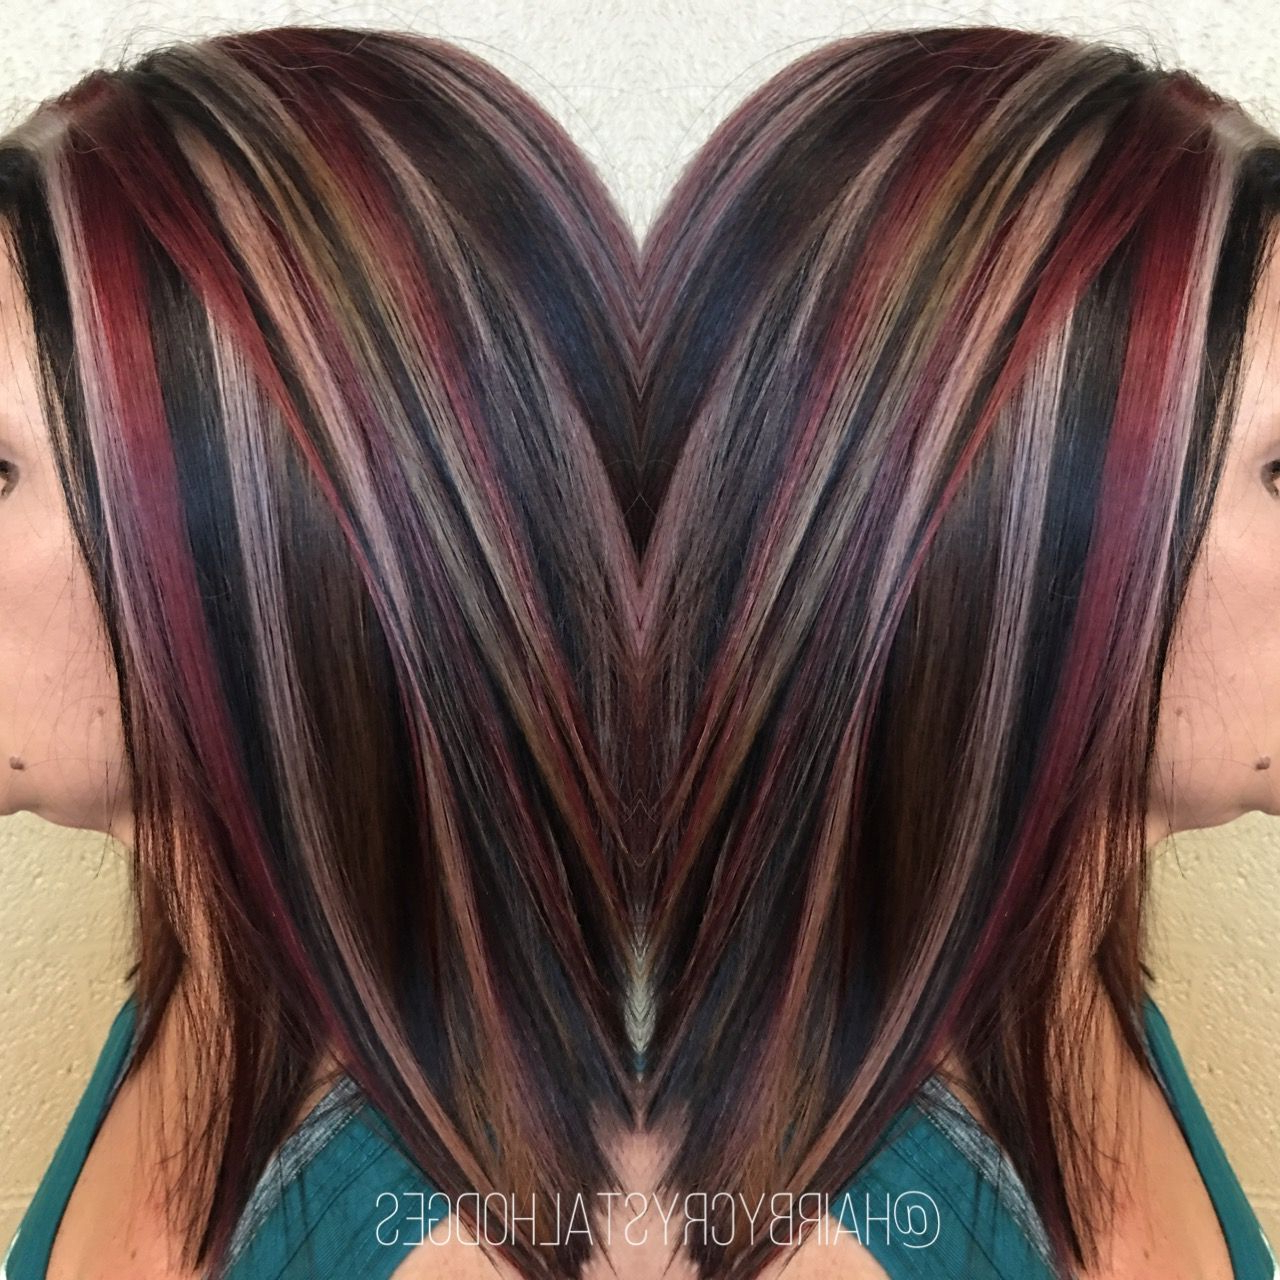 Pinadriana Mckenzi On Short Hairstyles In 2018 | Pinterest Pertaining To Short Haircuts With Red And Blonde Highlights (View 3 of 25)